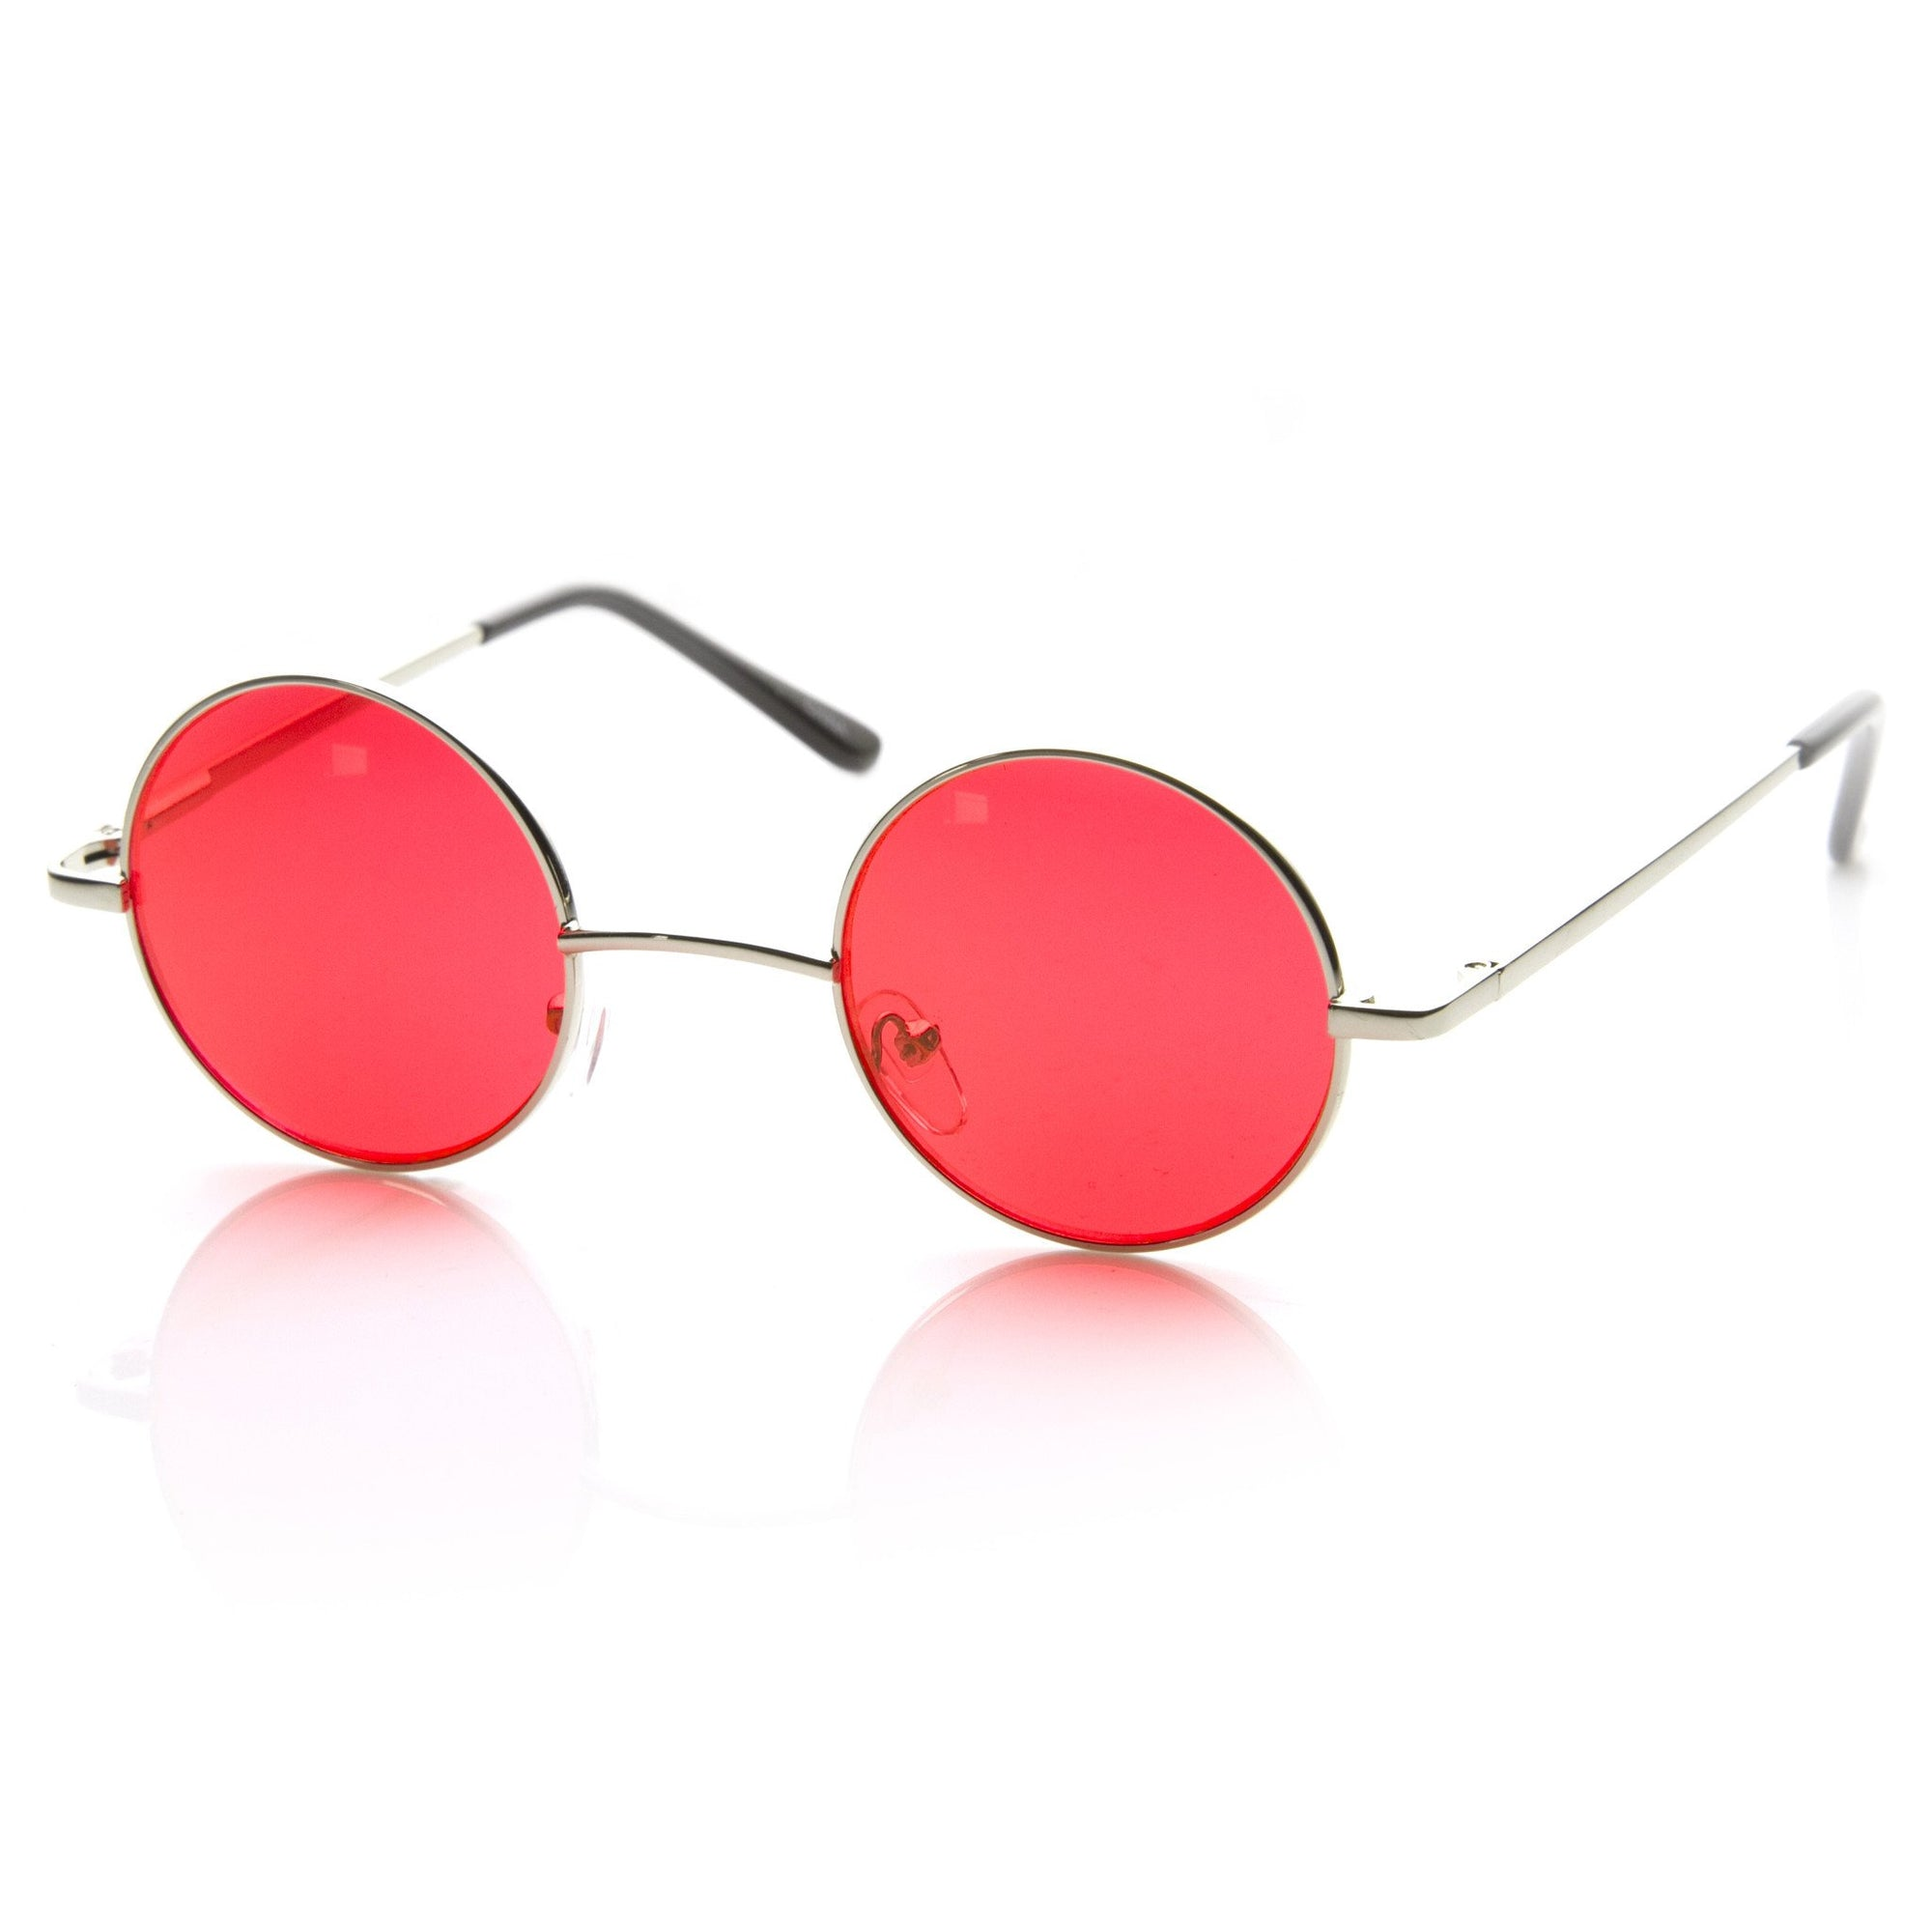 Small Color Lens Sunglasses Lennon Vintage Round Metal 8702 Inspired Circle A54L3Rj